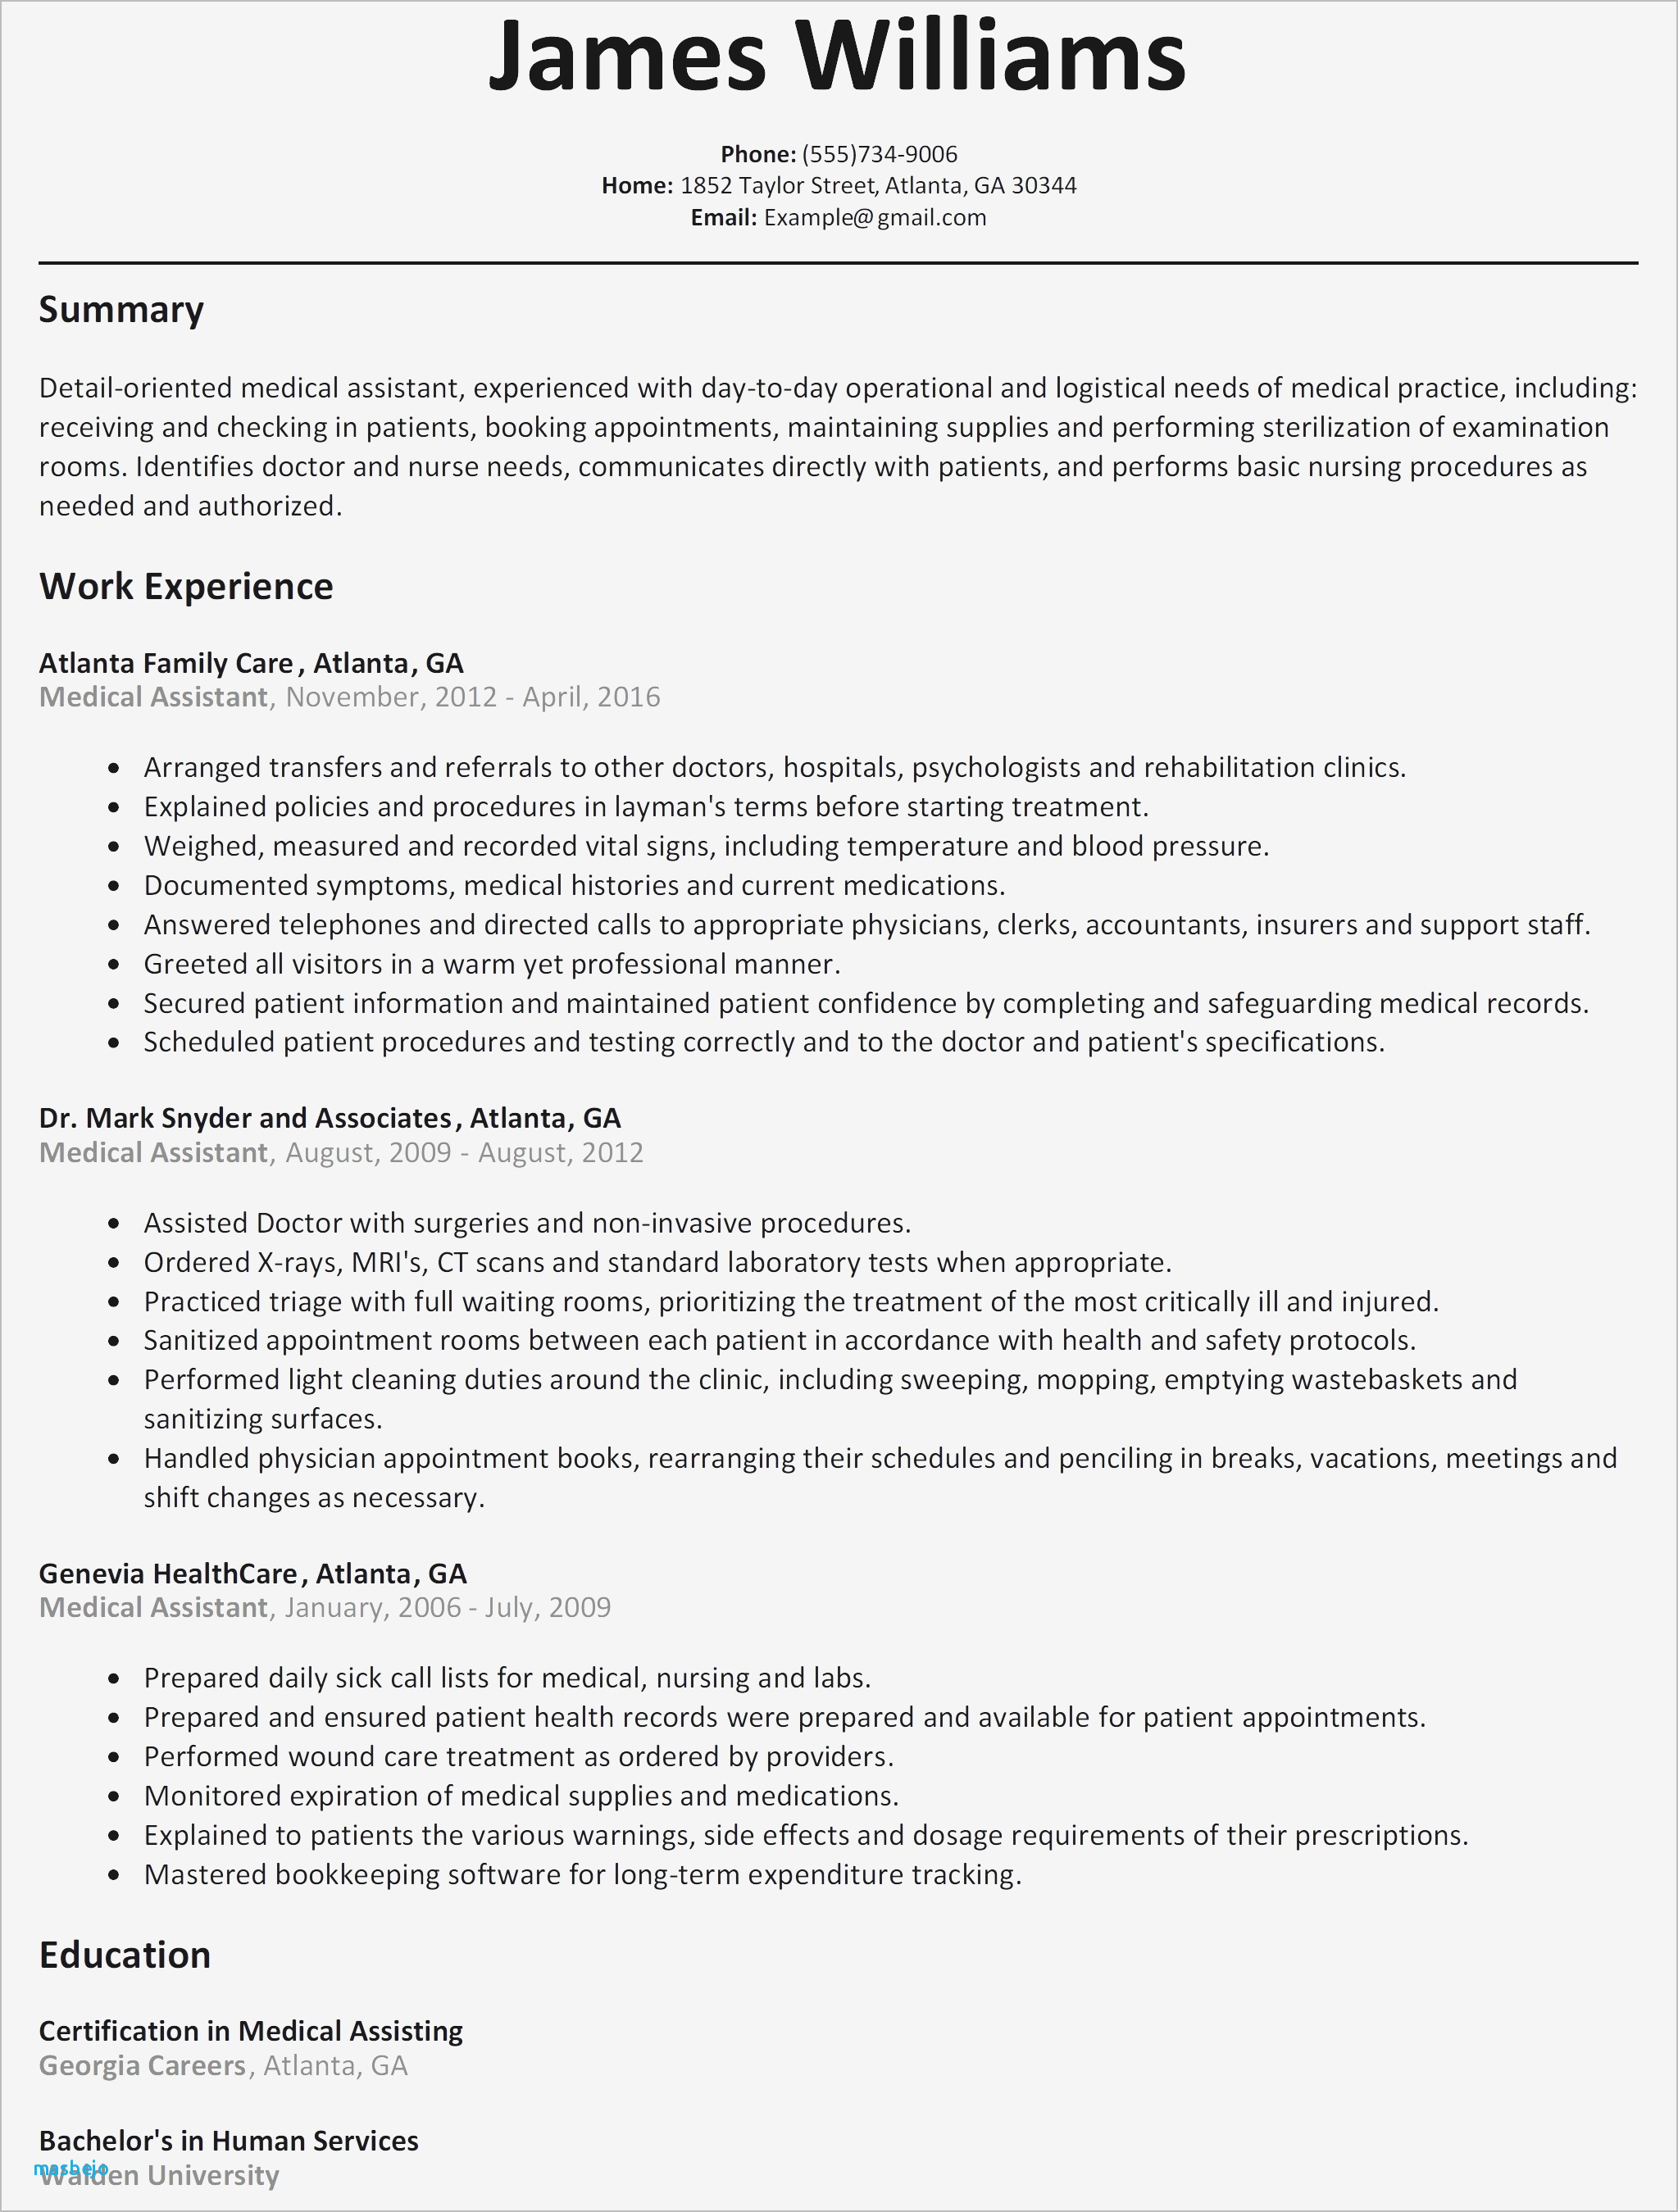 Phone Skills Resume - Examples Nursing Skills for Resume Luxury New Nurse Resume